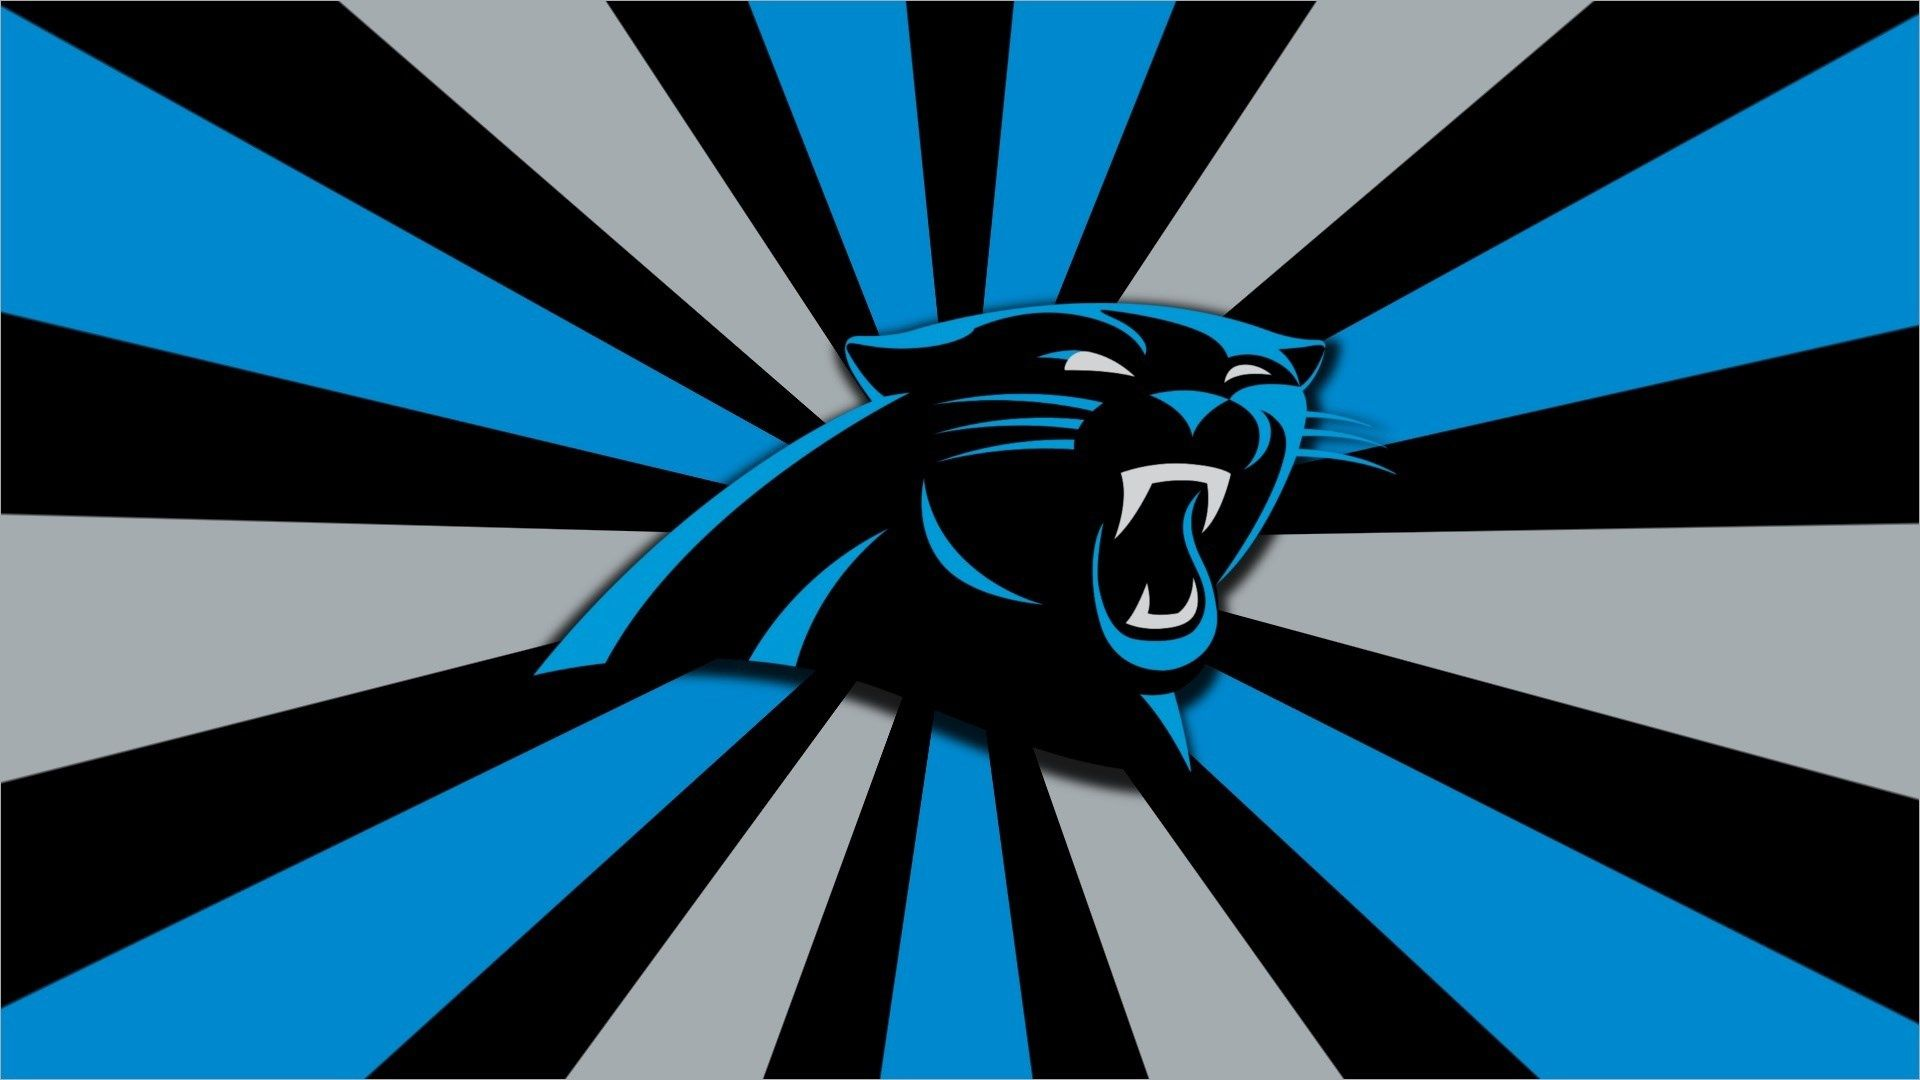 Free Screensaver Wallpapers For Carolina Panthers Deacon Nail 2016 07 10